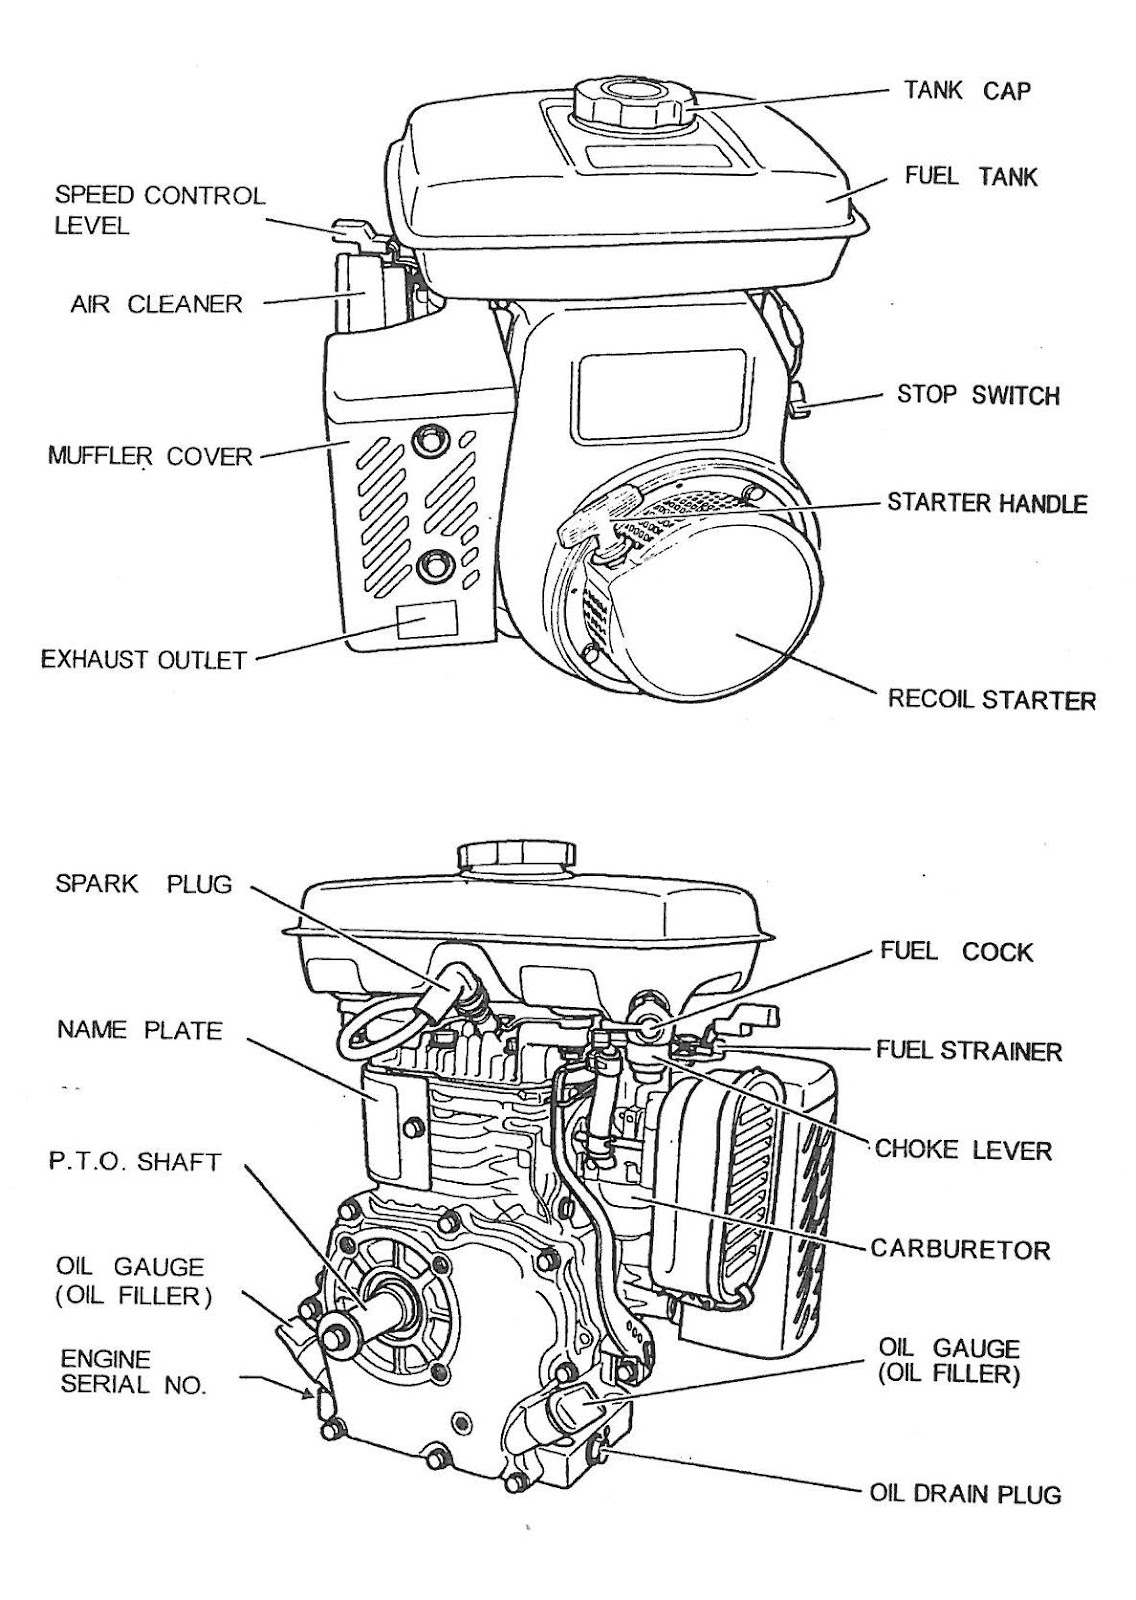 hight resolution of robin subaru engine diagram wiring library rh 59 codingcommunity de ezgo robin engine parts diagram ezgo robin engine wiring diagram